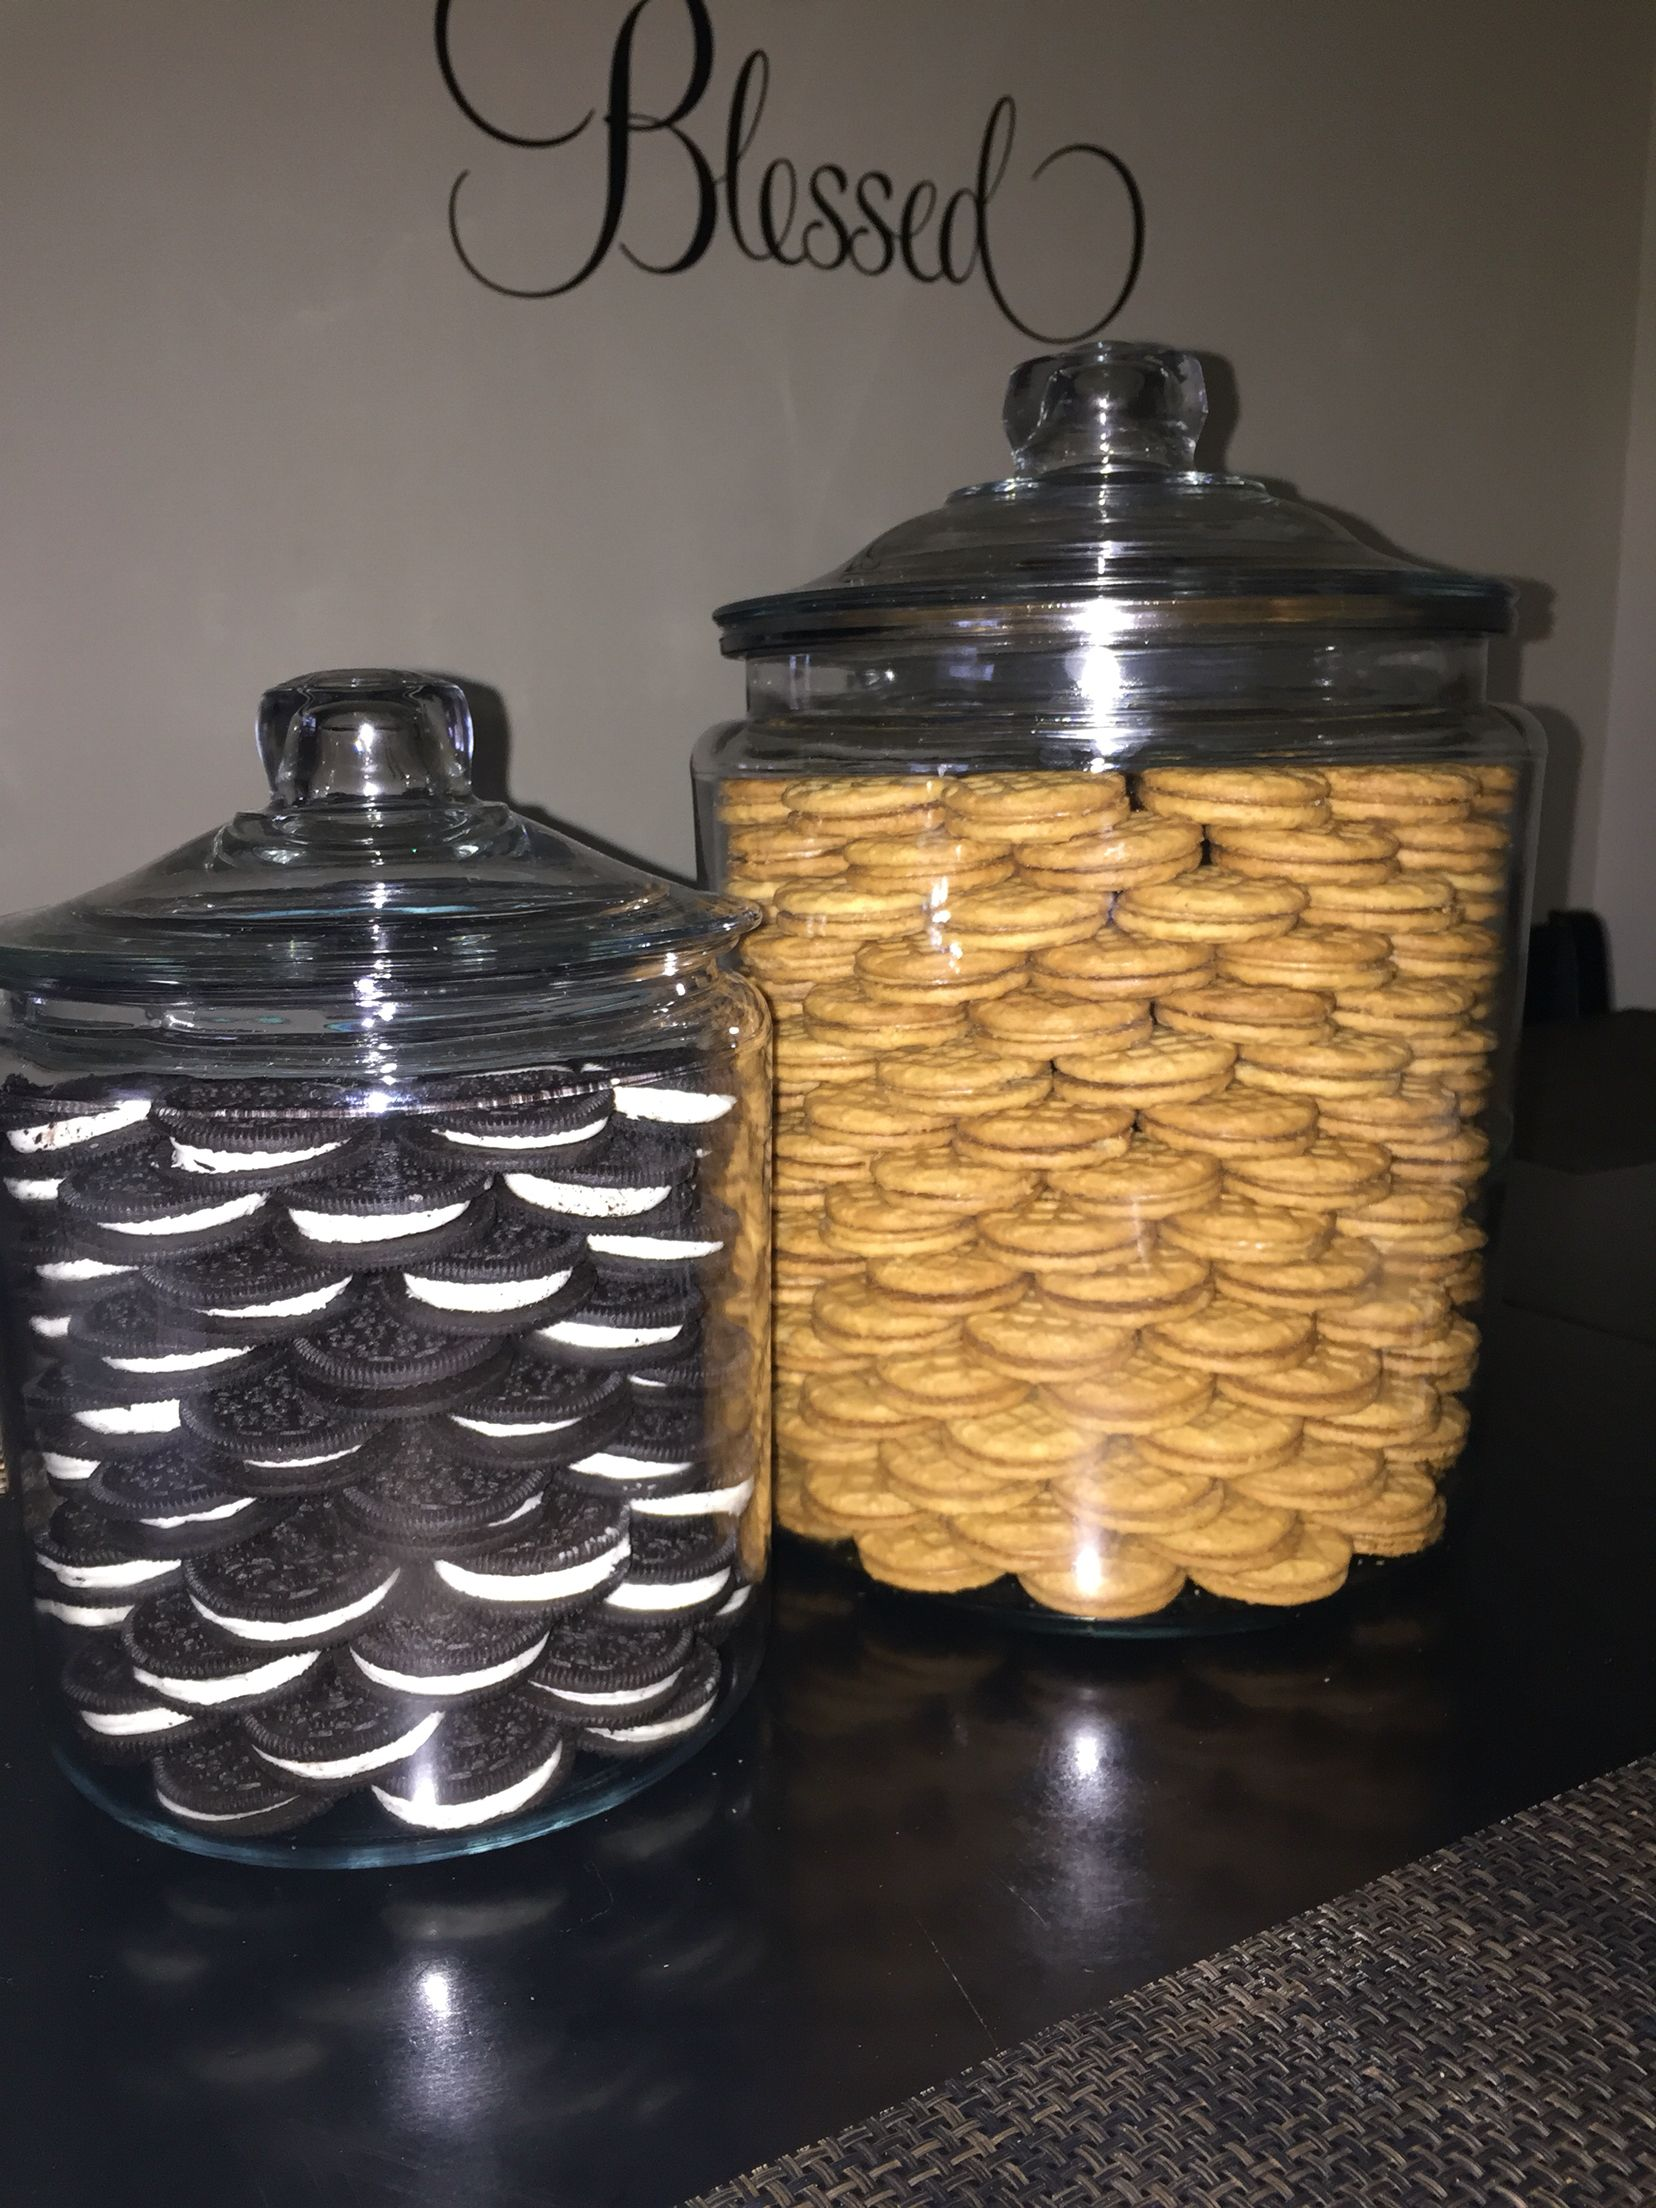 Decorative Cookie Containers My Cookie Jars Who Says Organization Has To Be Boring